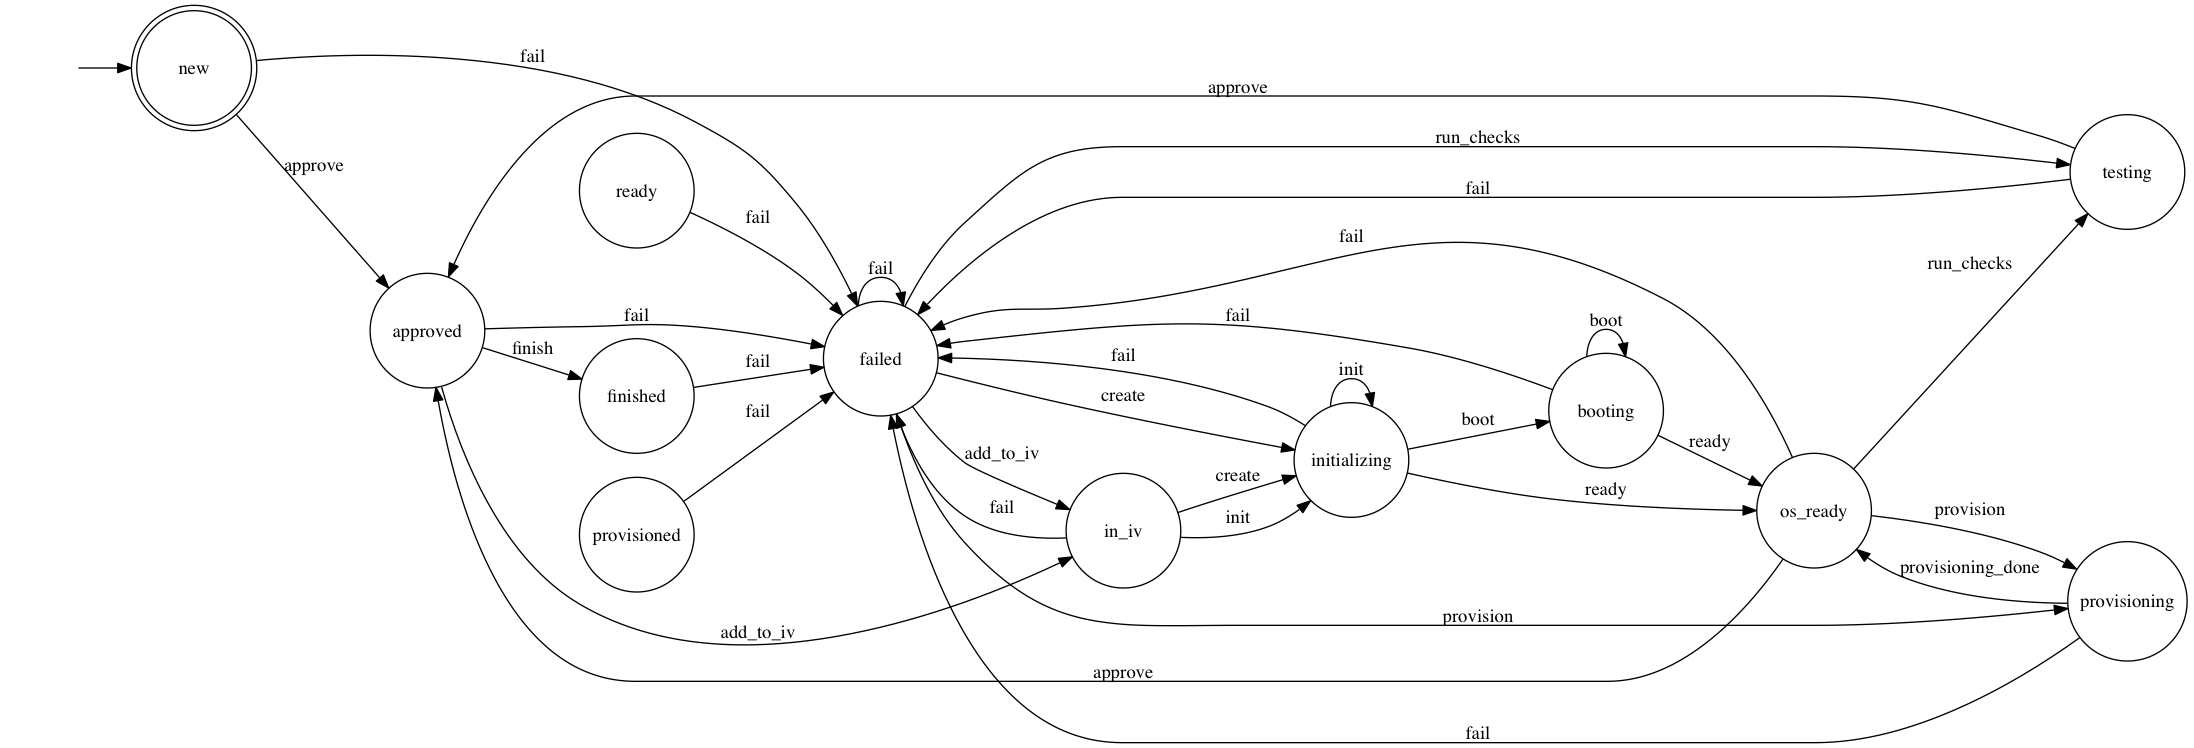 Transitions Pypi Examples Of State Transition Diagrams Diagram Example